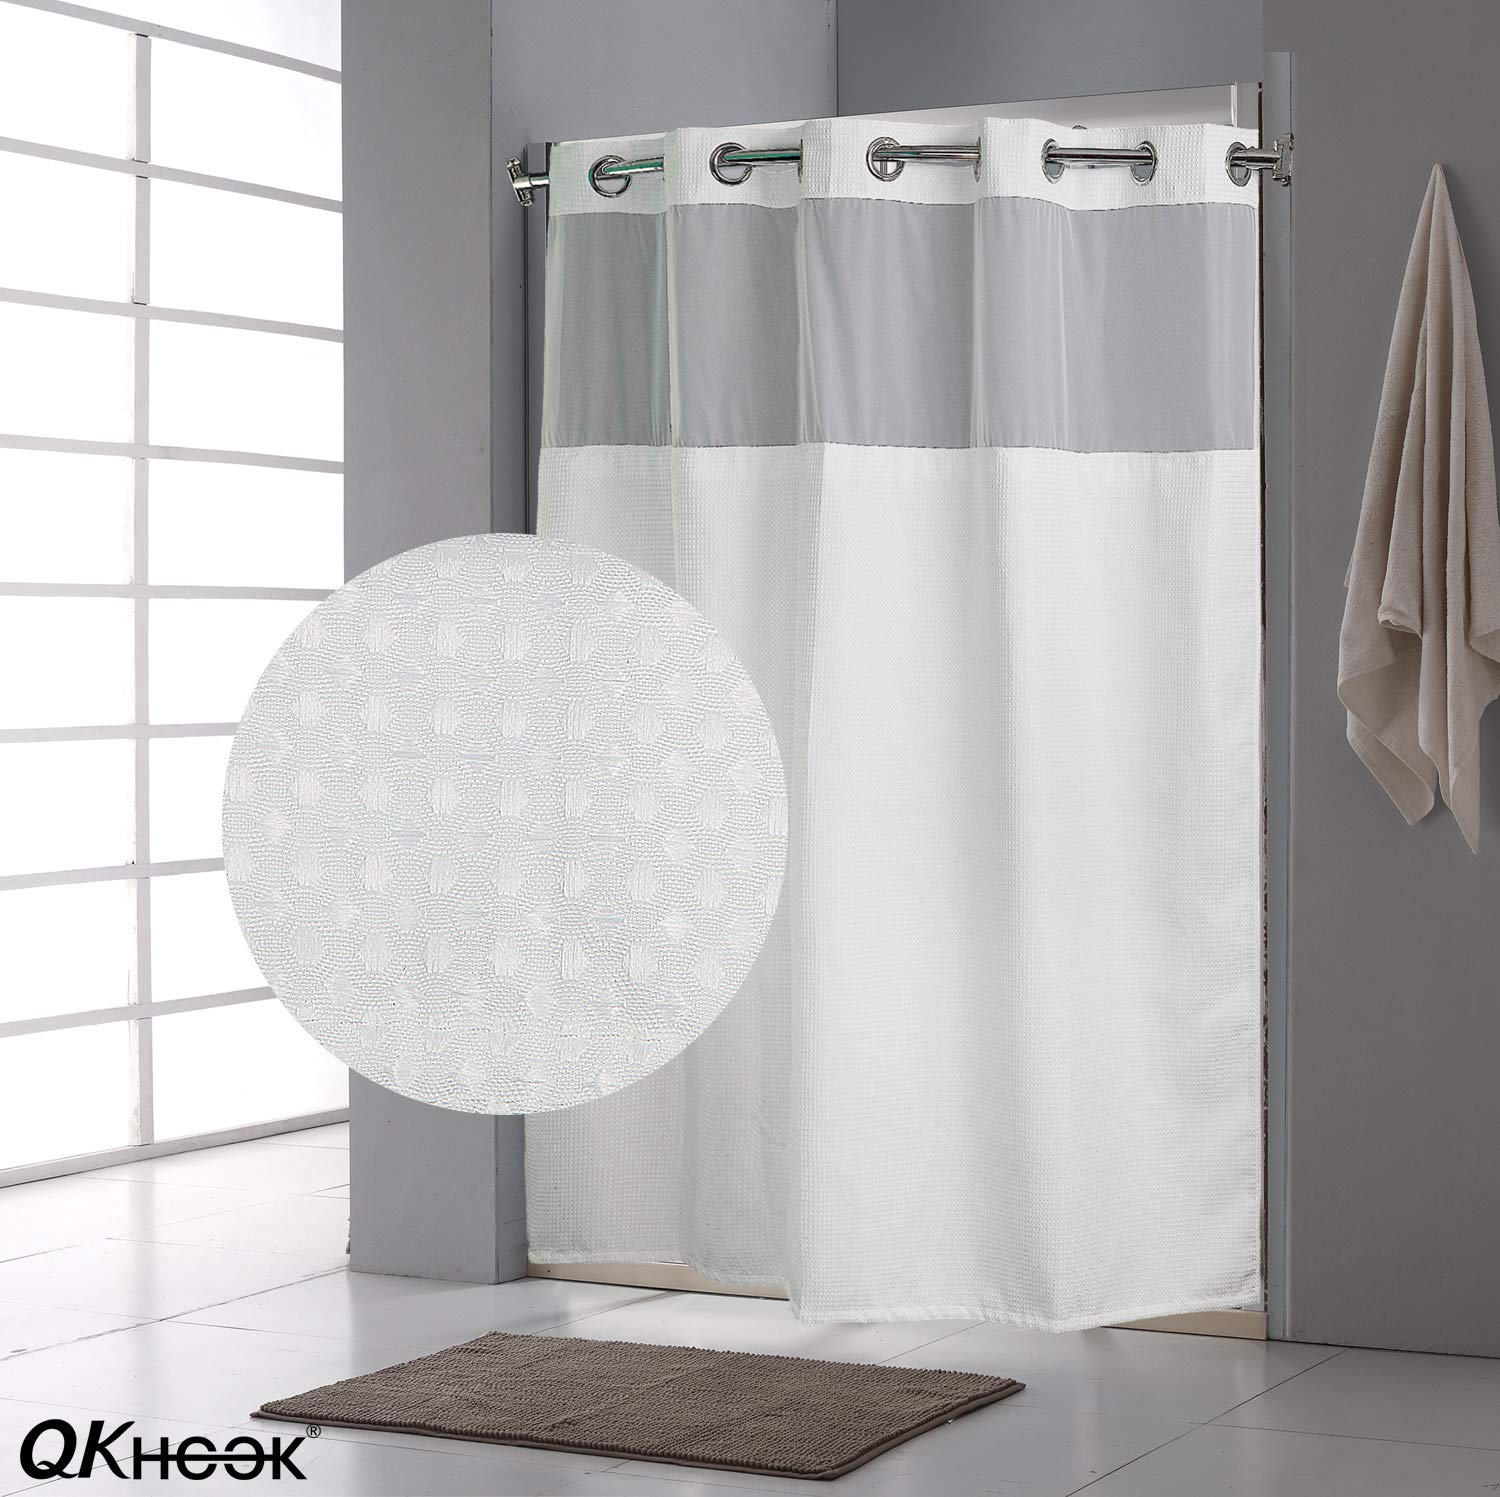 qkhook hookless shower curtain with snap in liner 1 pack 71x74 inches mildew resistant fabric waffle water repellent and antibacterial